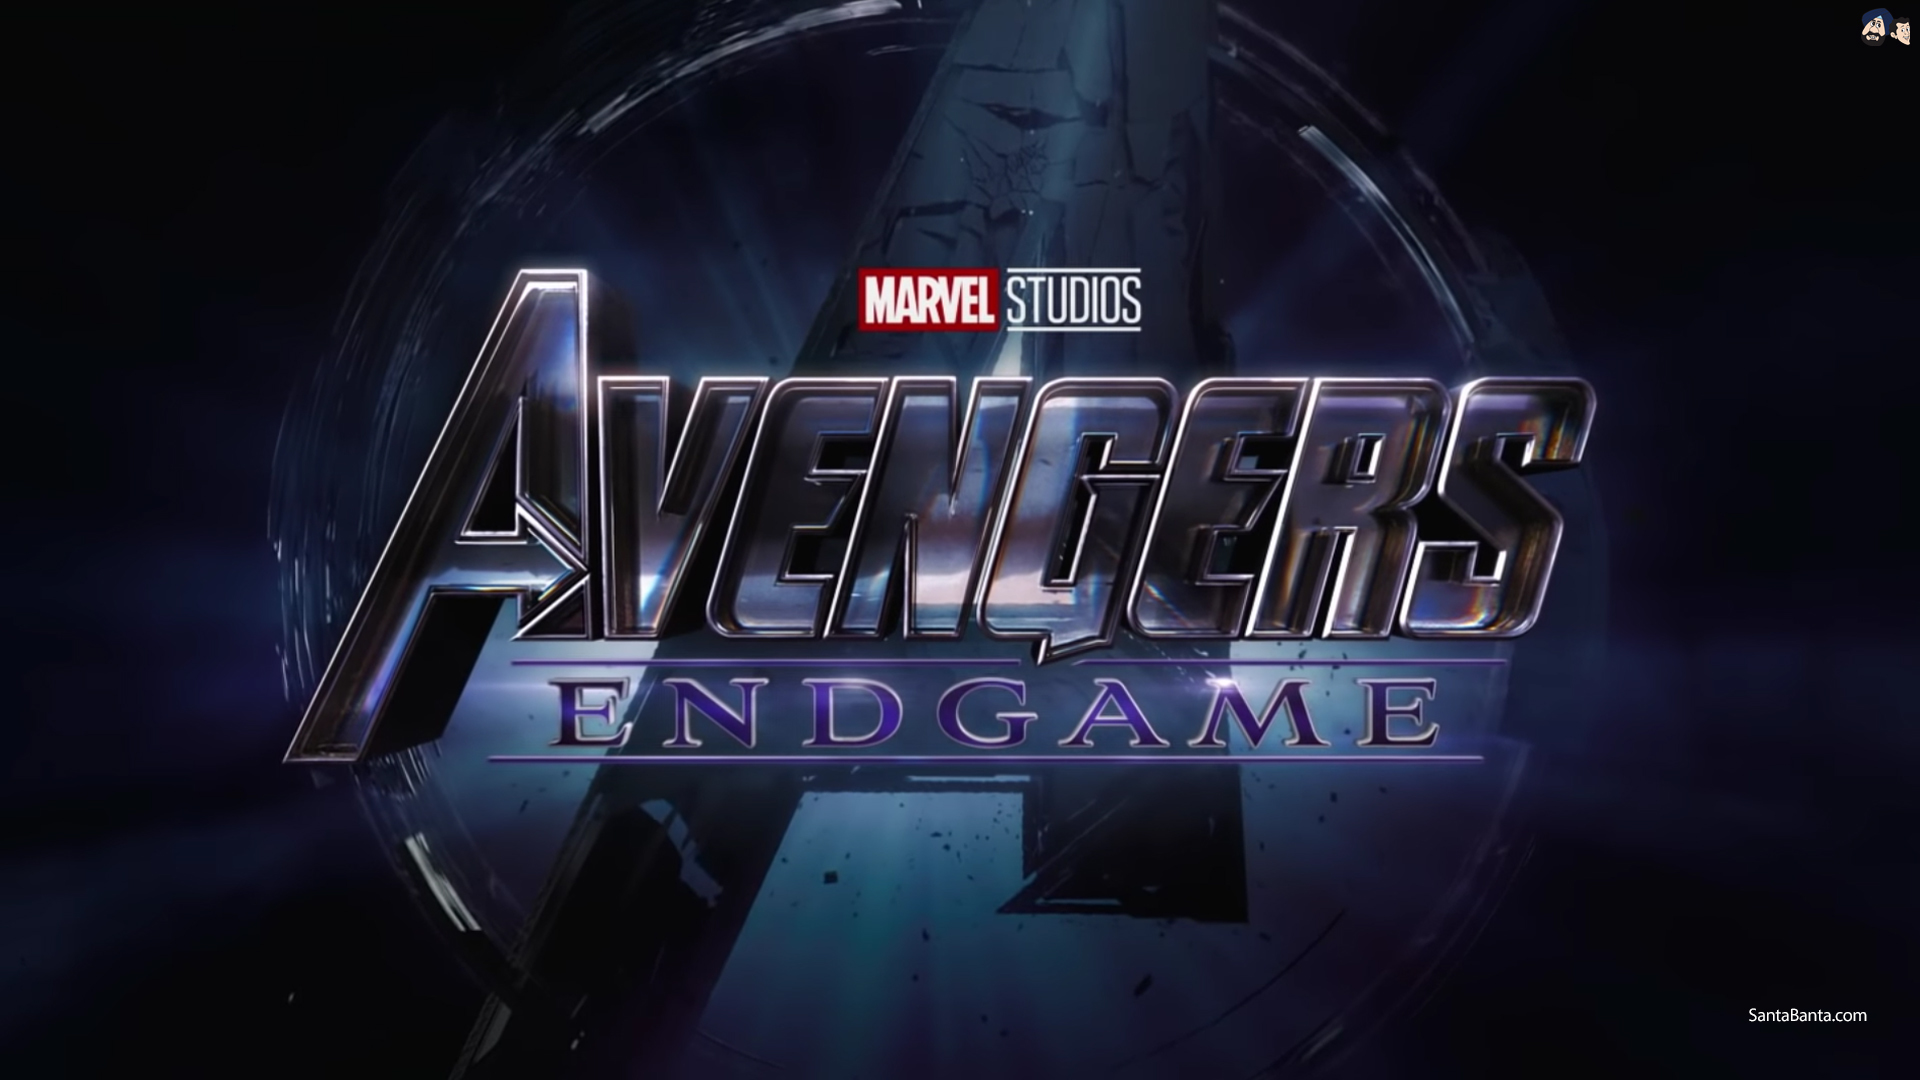 Best Avengers Endgame Avengers 4 Wallpapers for Desktop and Mobile 1920x1080